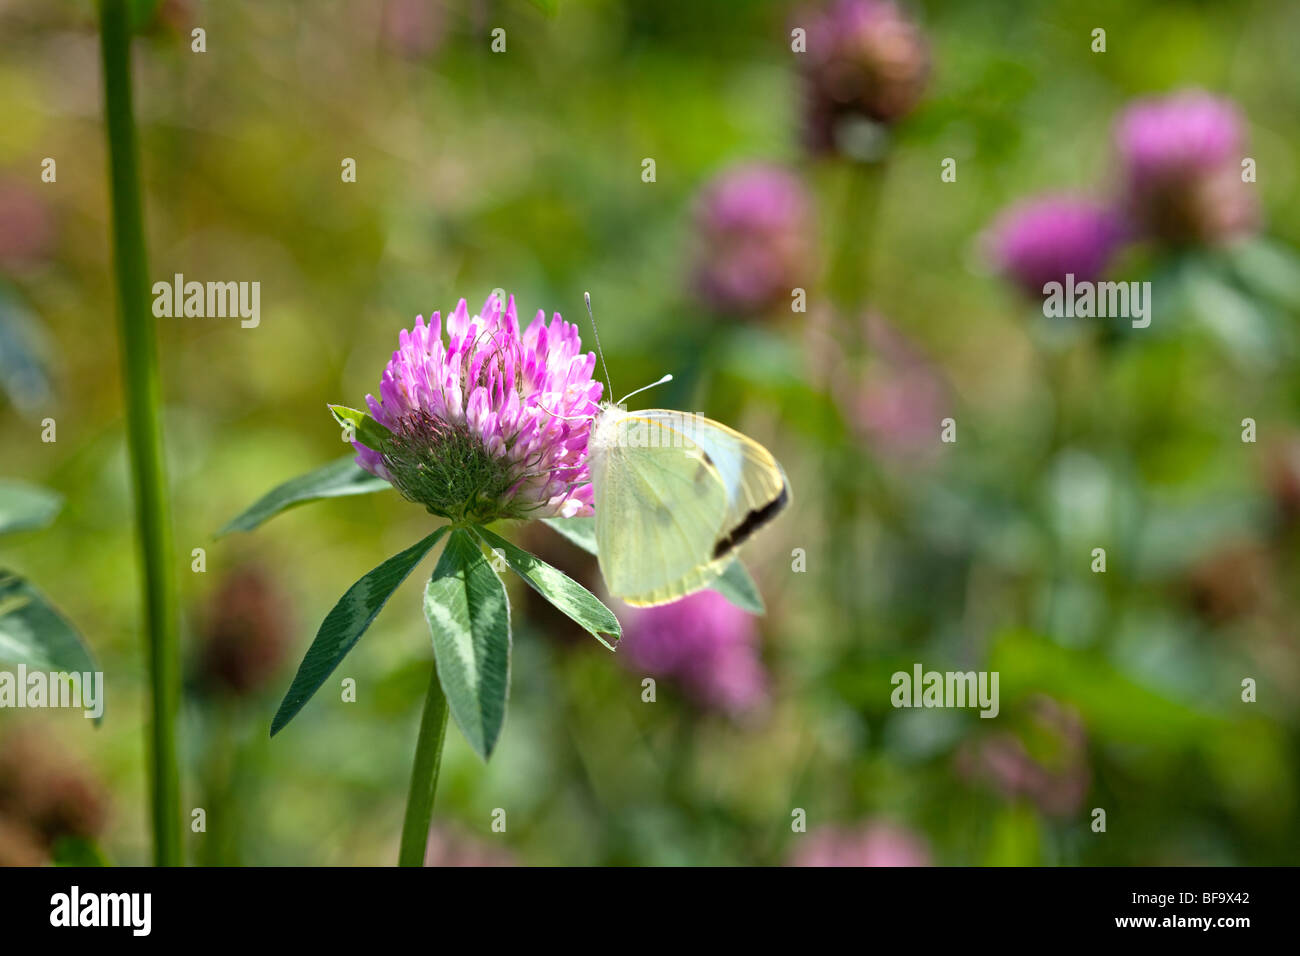 Small white butterfly on clover - Stock Image